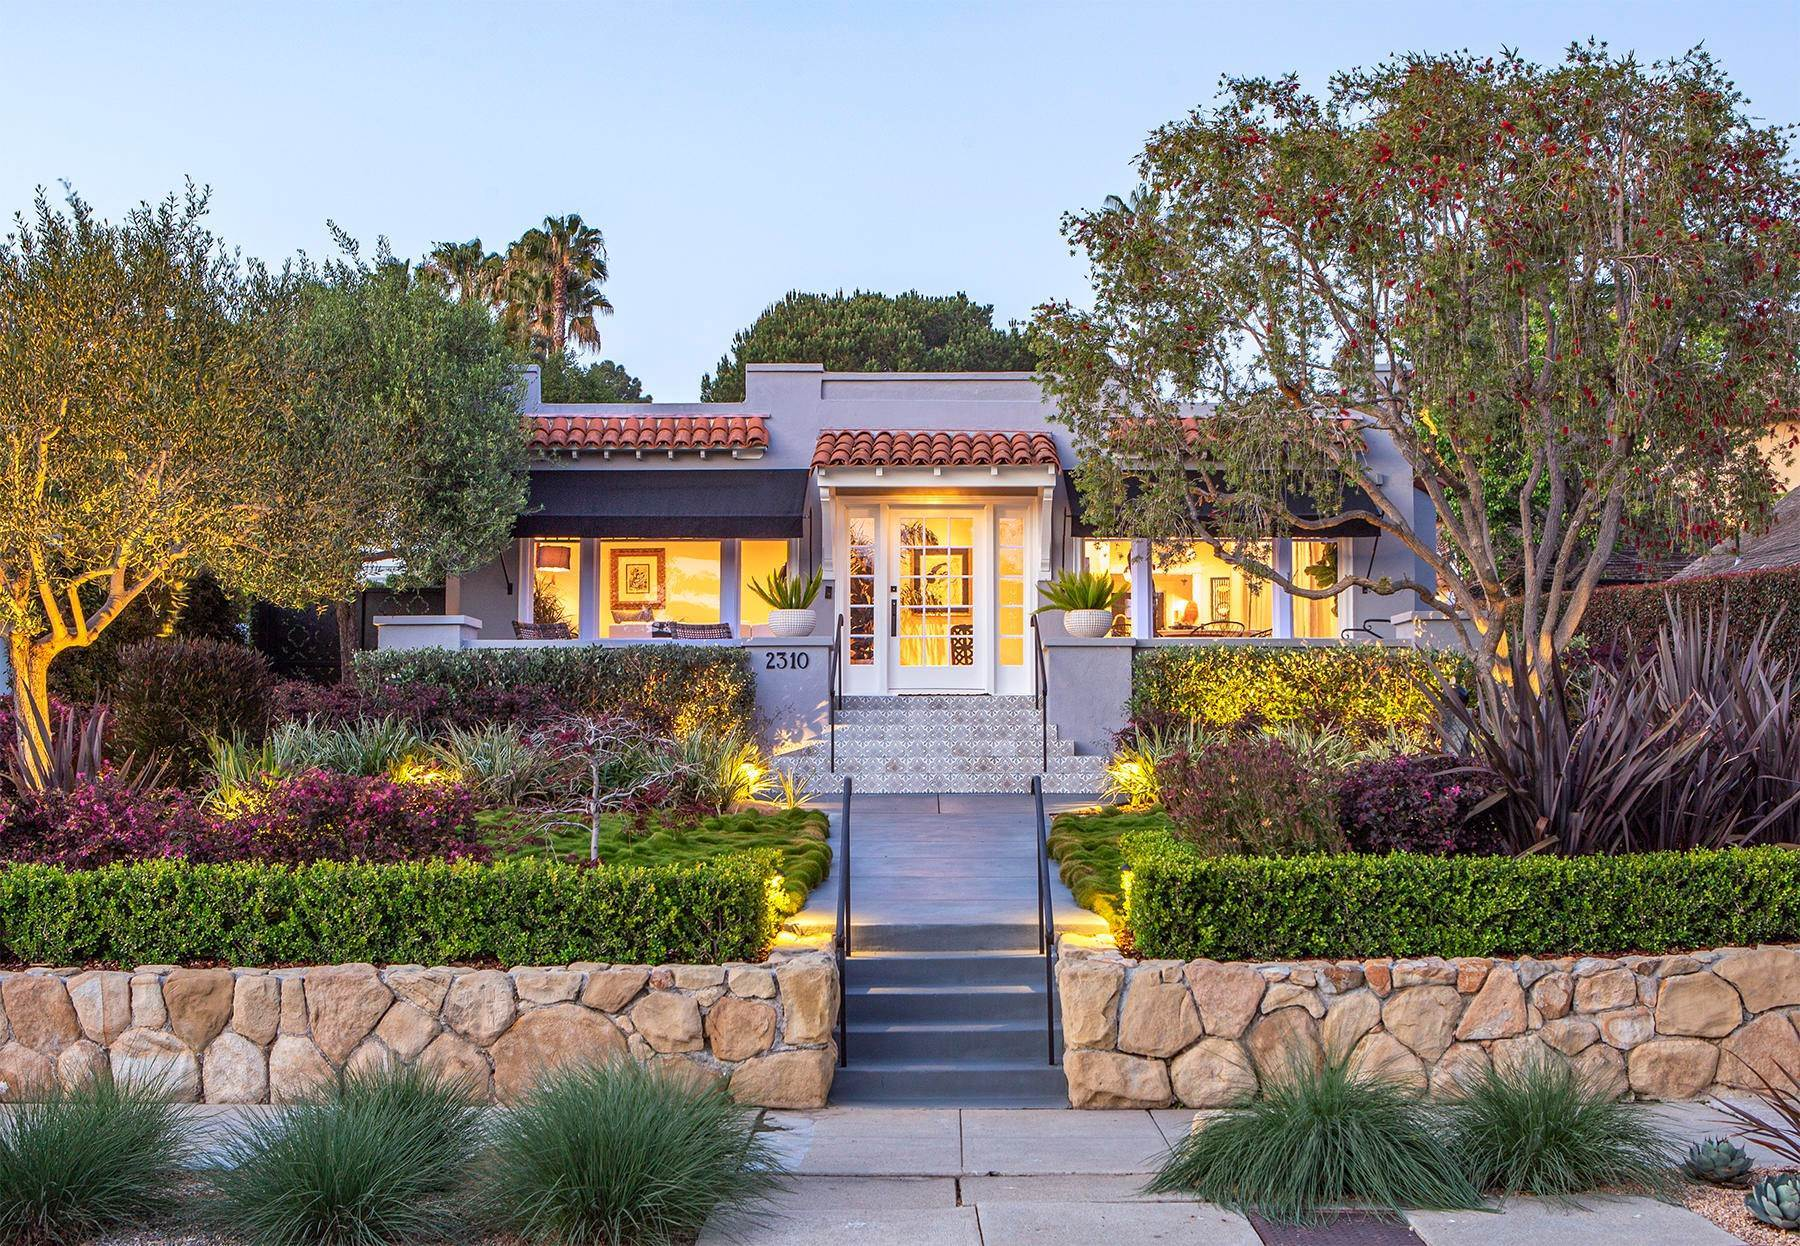 Estate for Sale at 2310 State Street Santa Barbara, California 93105 United States